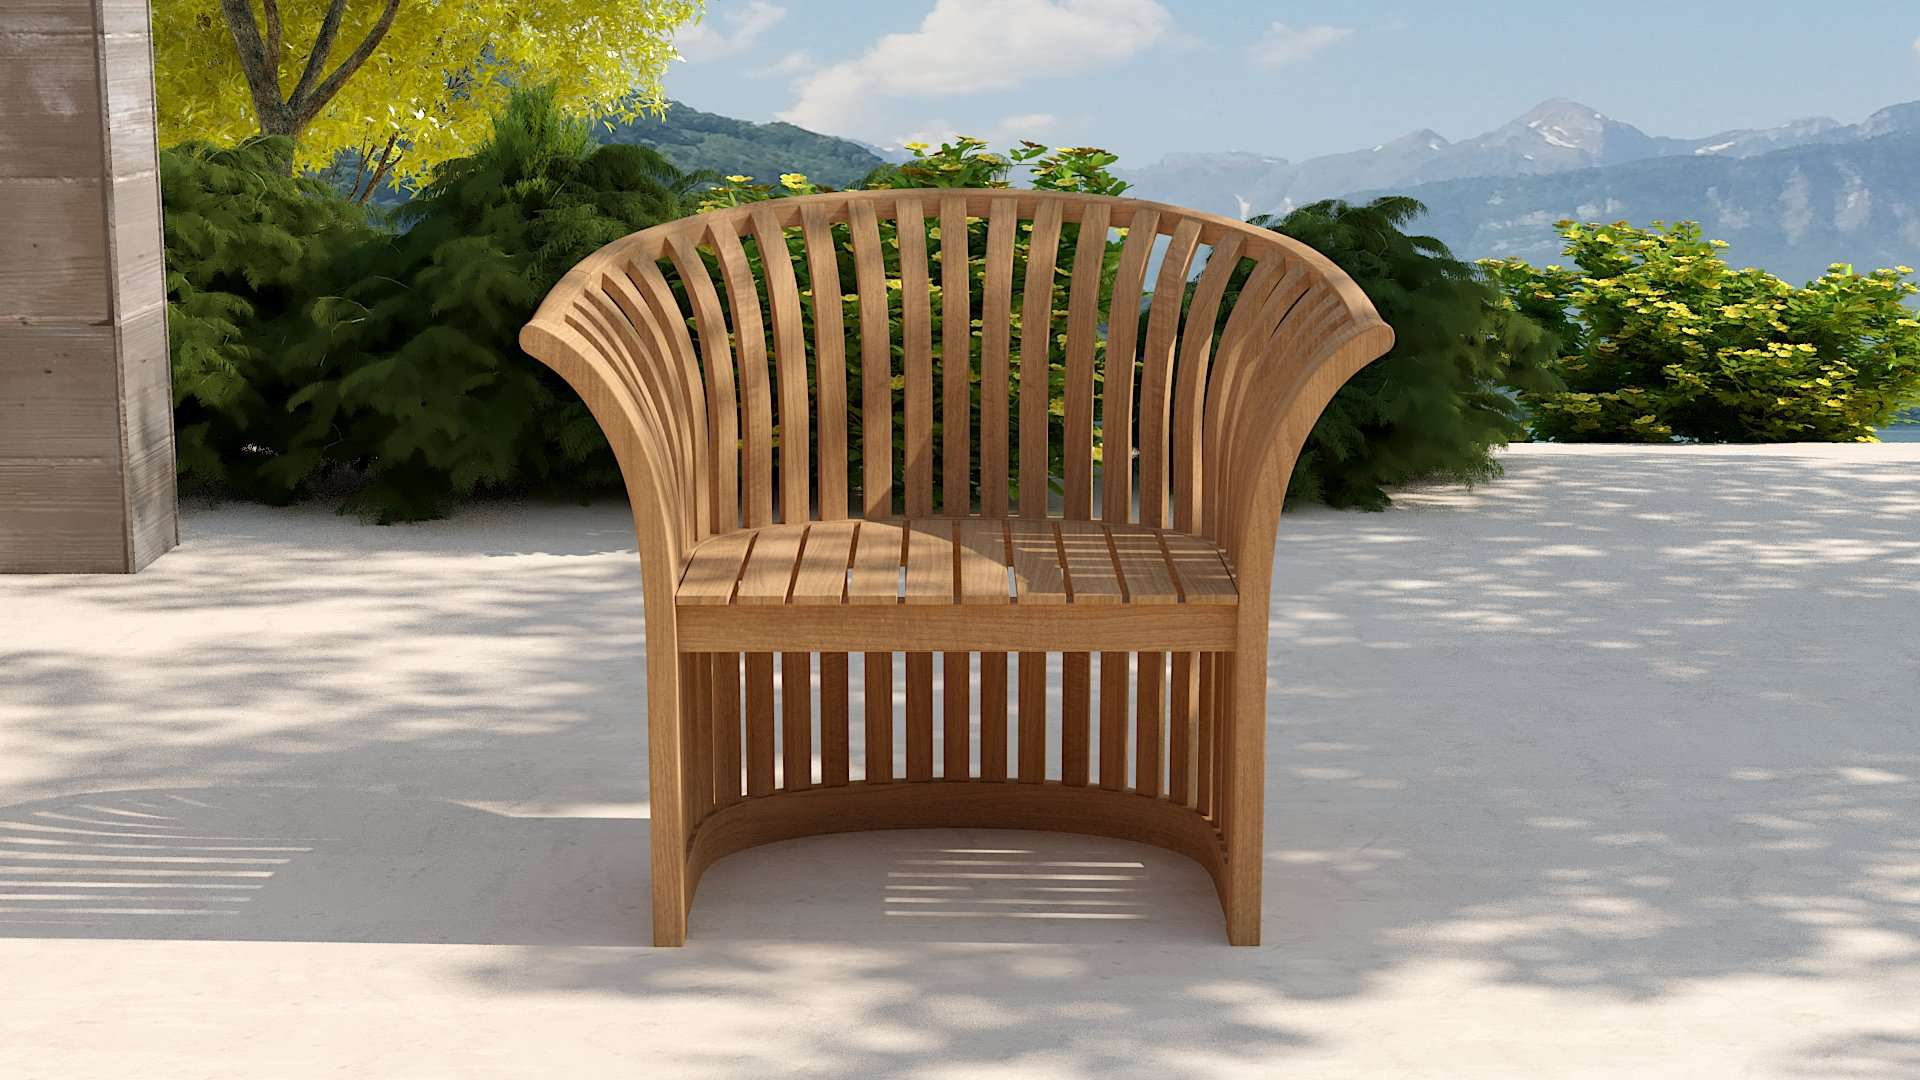 Conservatory Teak Chair  - Chic Teak® | Luxury Teak Furniture